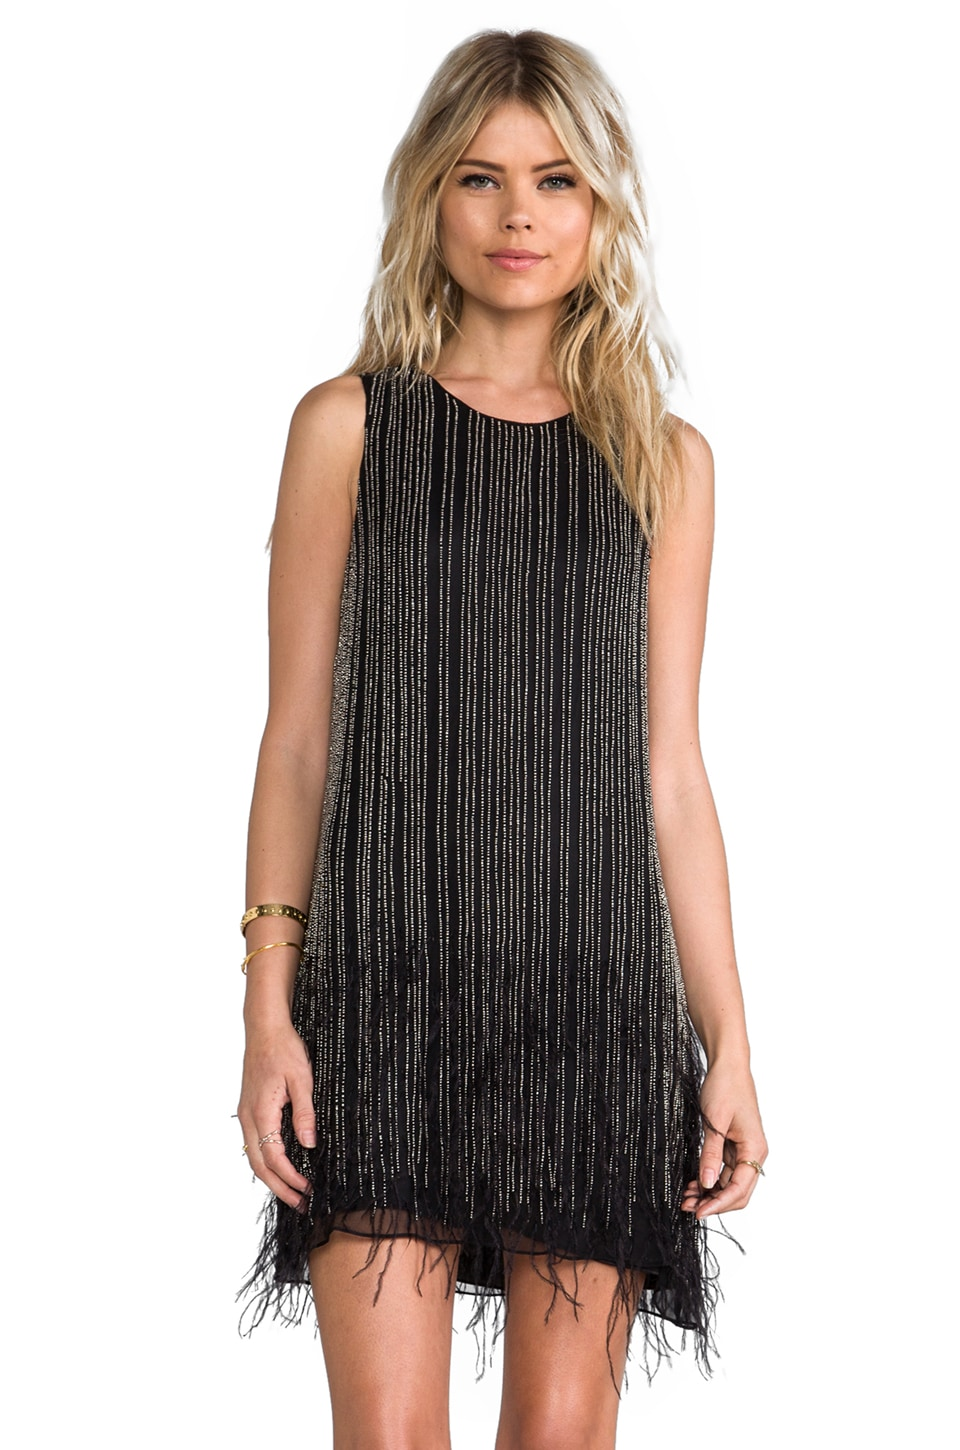 Parker Allegra Feather Dress in Black